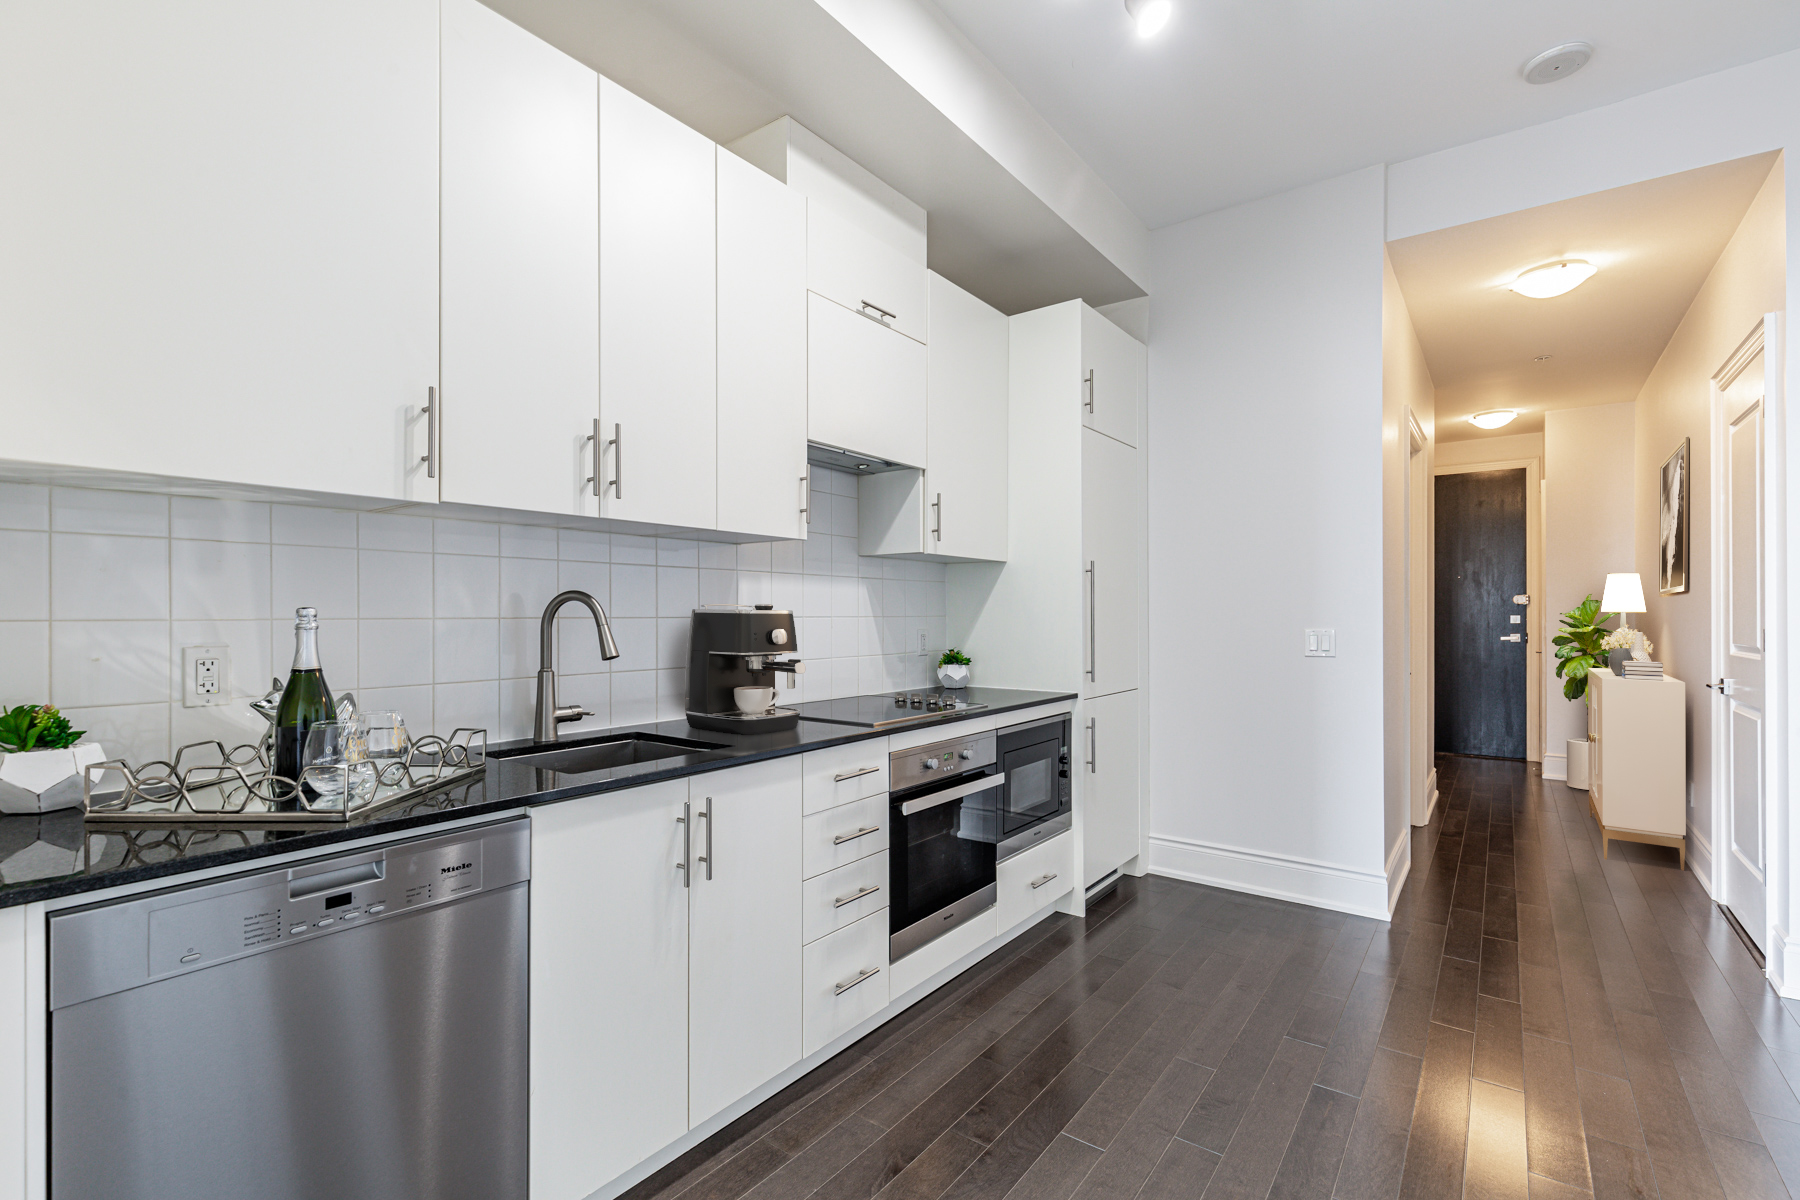 Condo kitchen stretching from wall to wall.